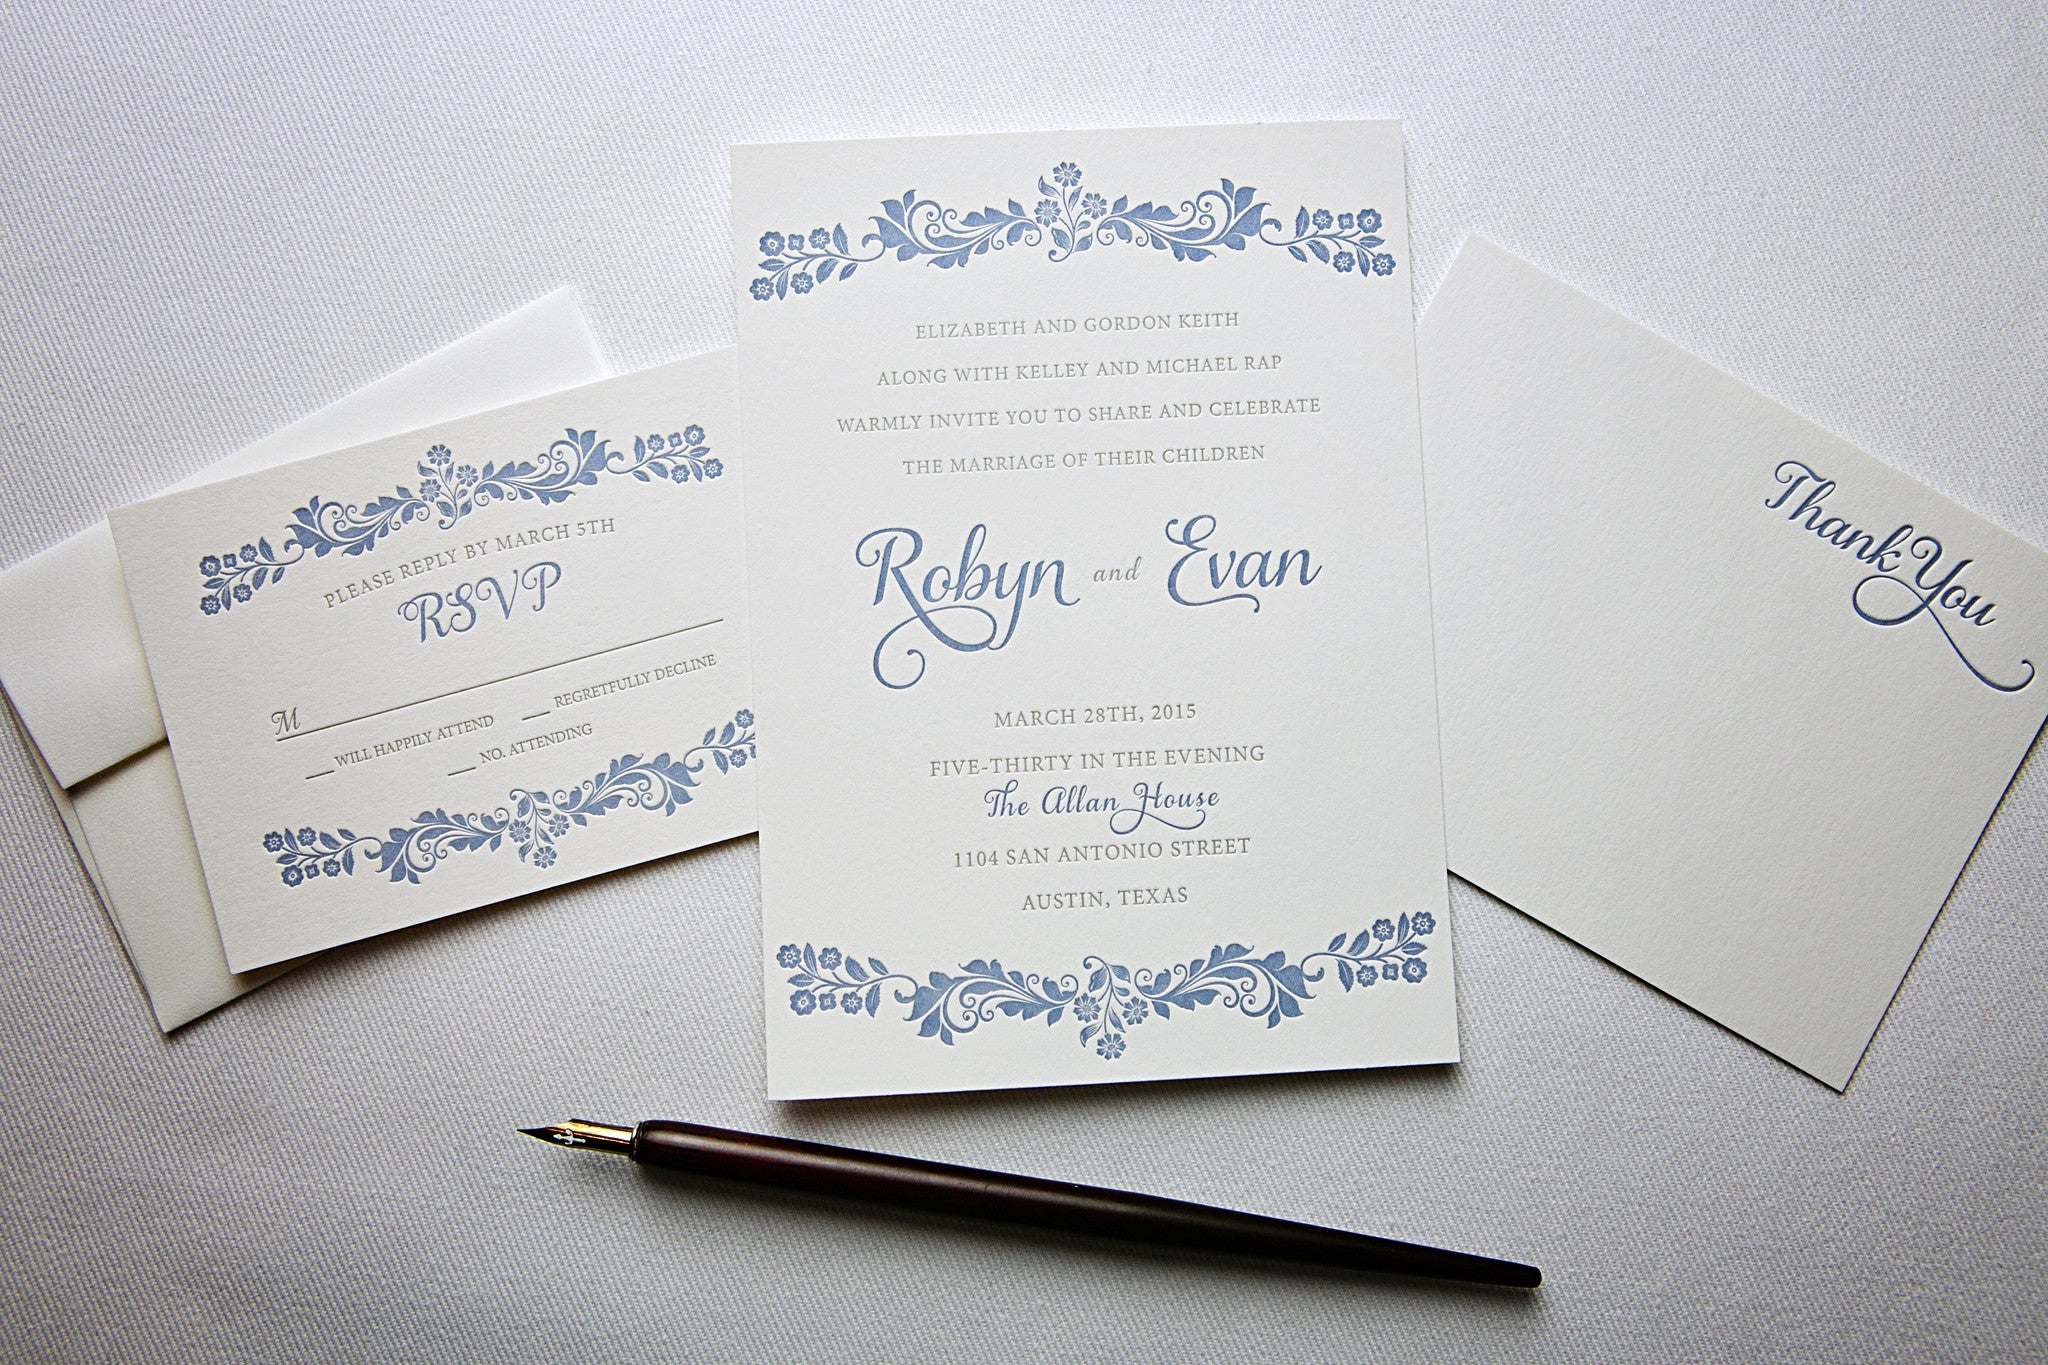 Custom Letterpress Wedding Invitations - Percolator Letterpress Co.